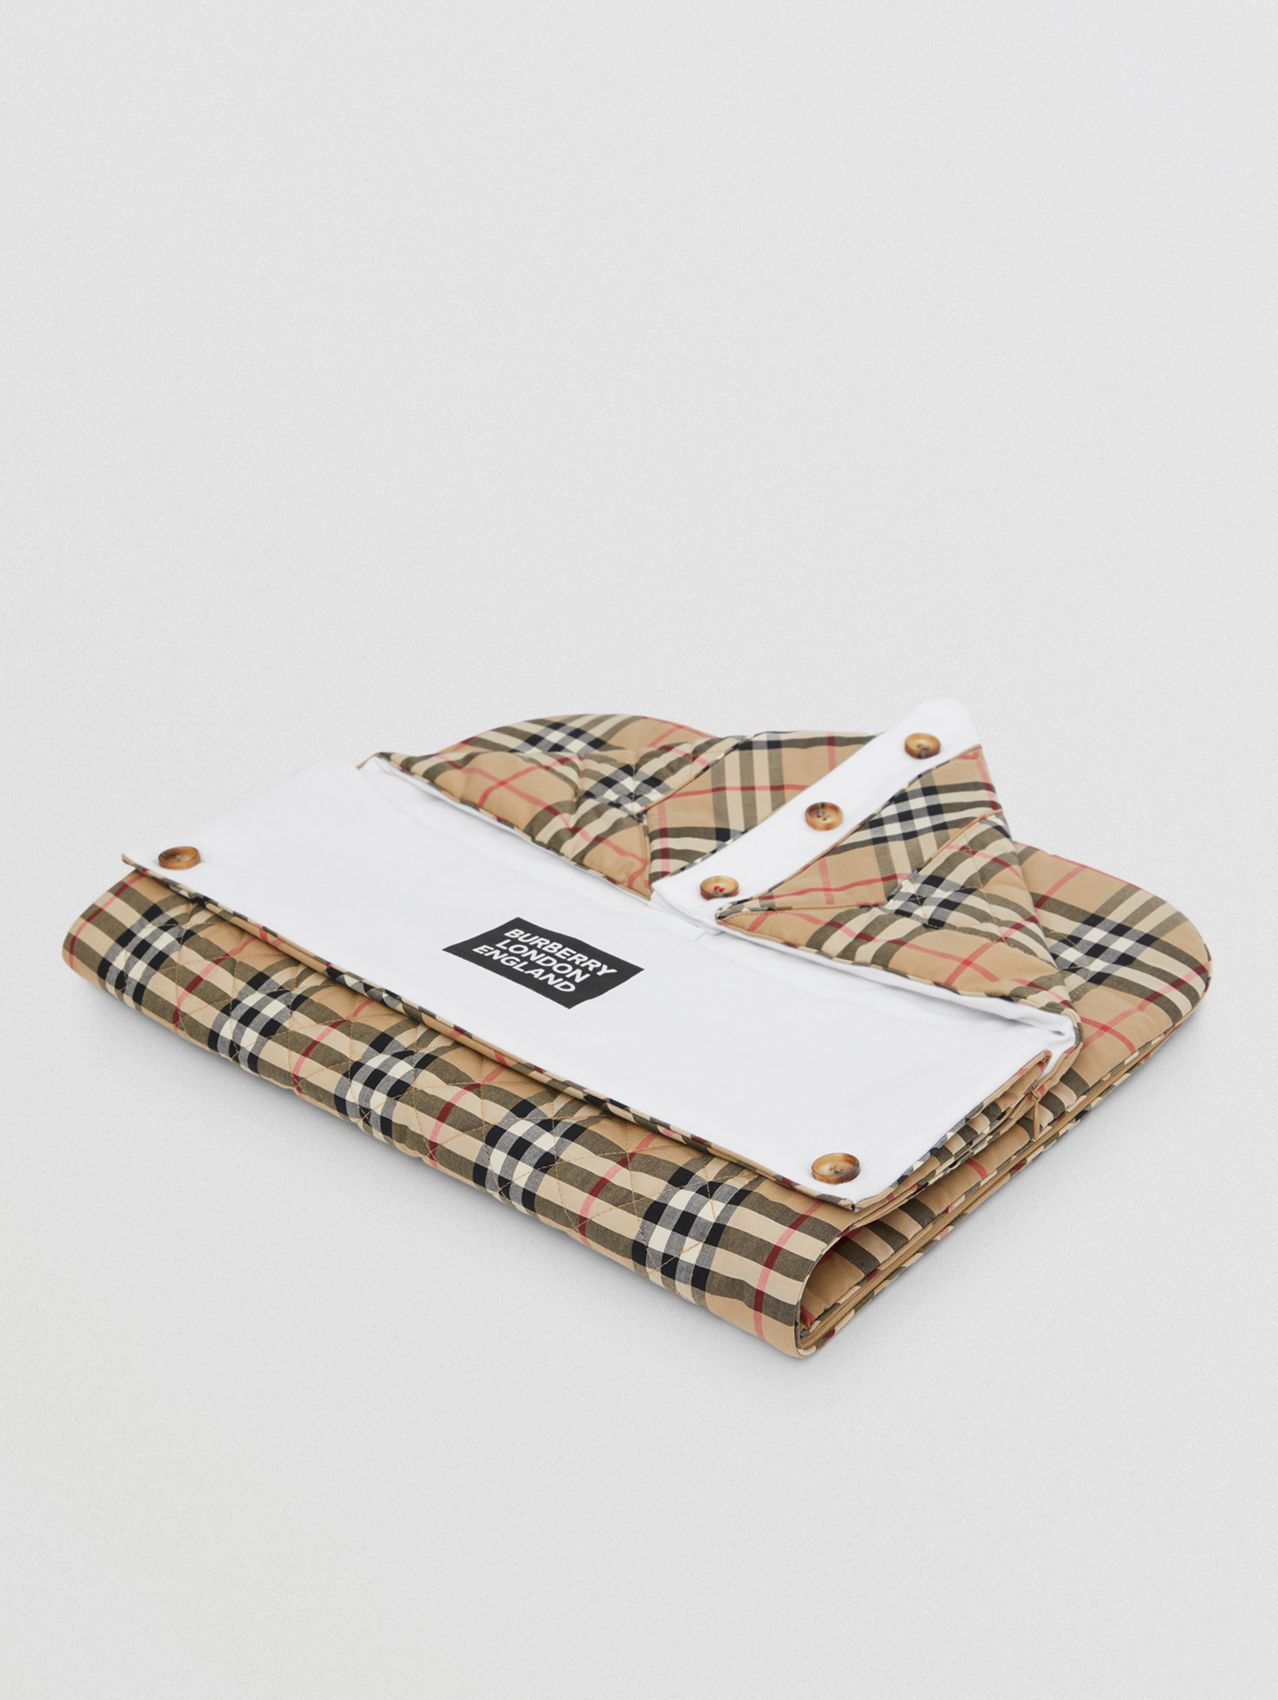 Logo Print Vintage Check Cotton Baby Nest (Archive Beige)